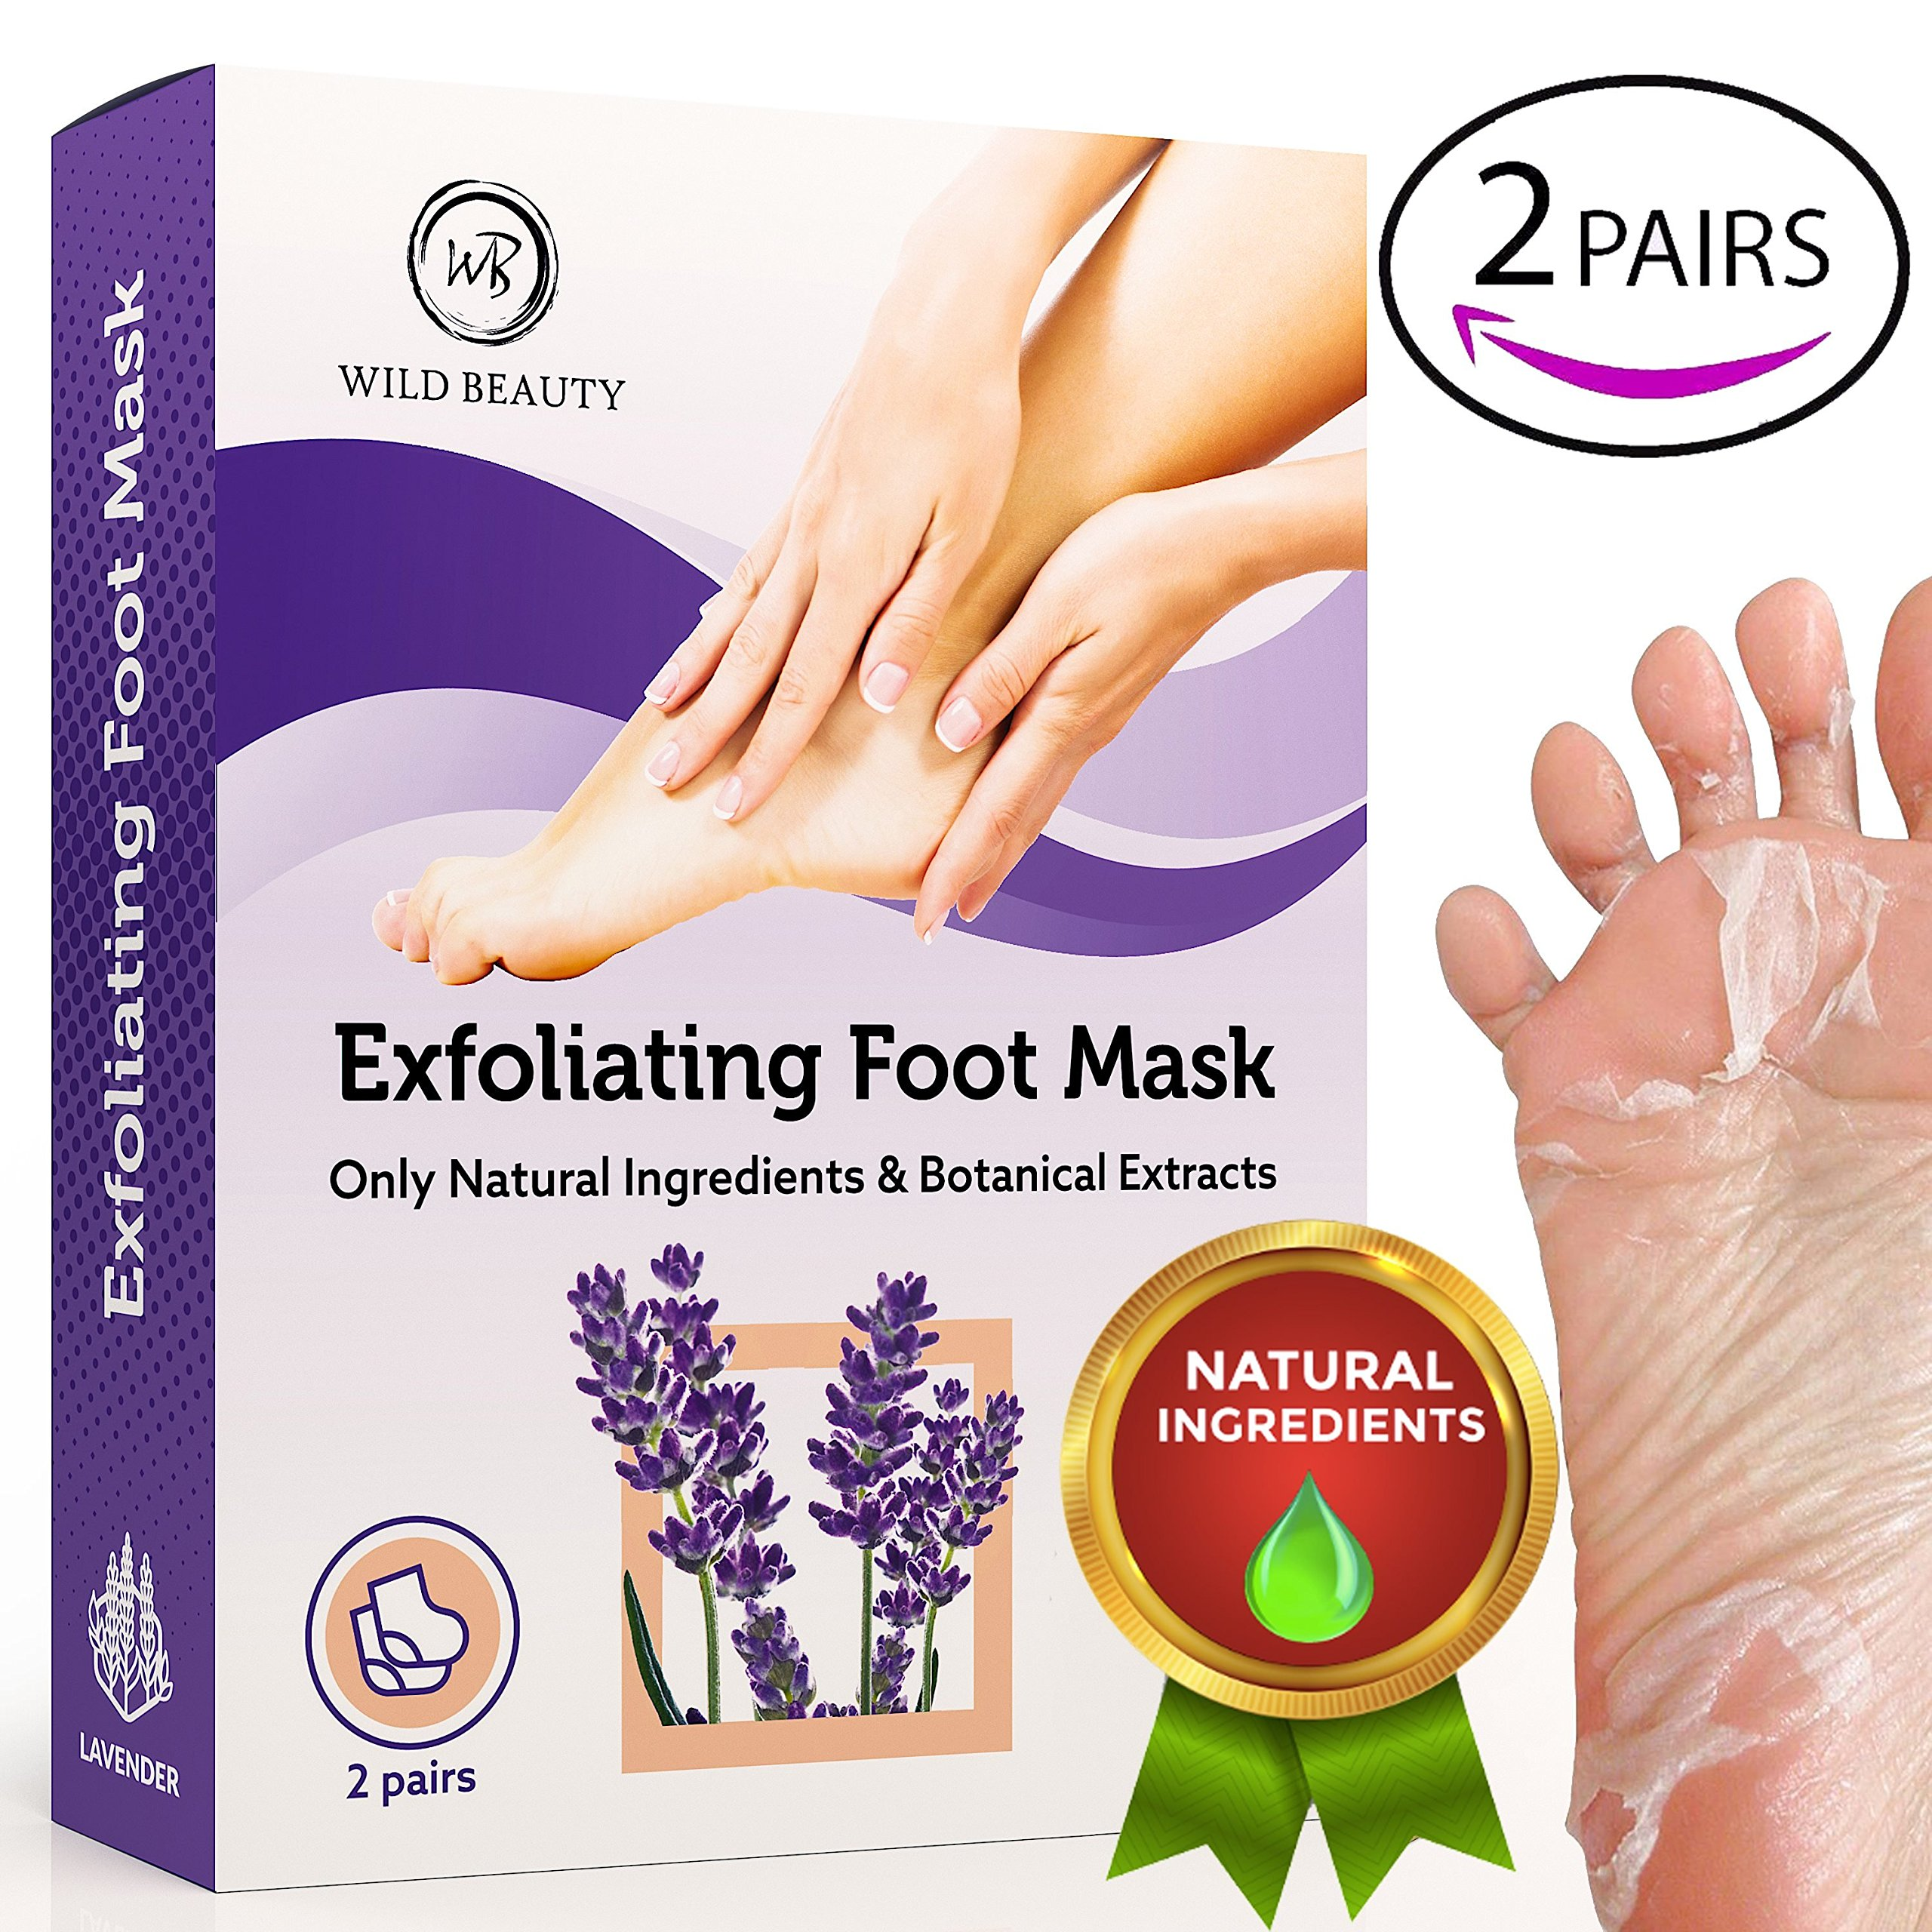 NEW 2018 Exfoliating Foot Peel Mask For Soft Touch 2 Pairs Baby Foot Peel - Peeling Away Calluses Dead Skin Remover for Feet - Repair Rough Heels - Lavender Baby Feet